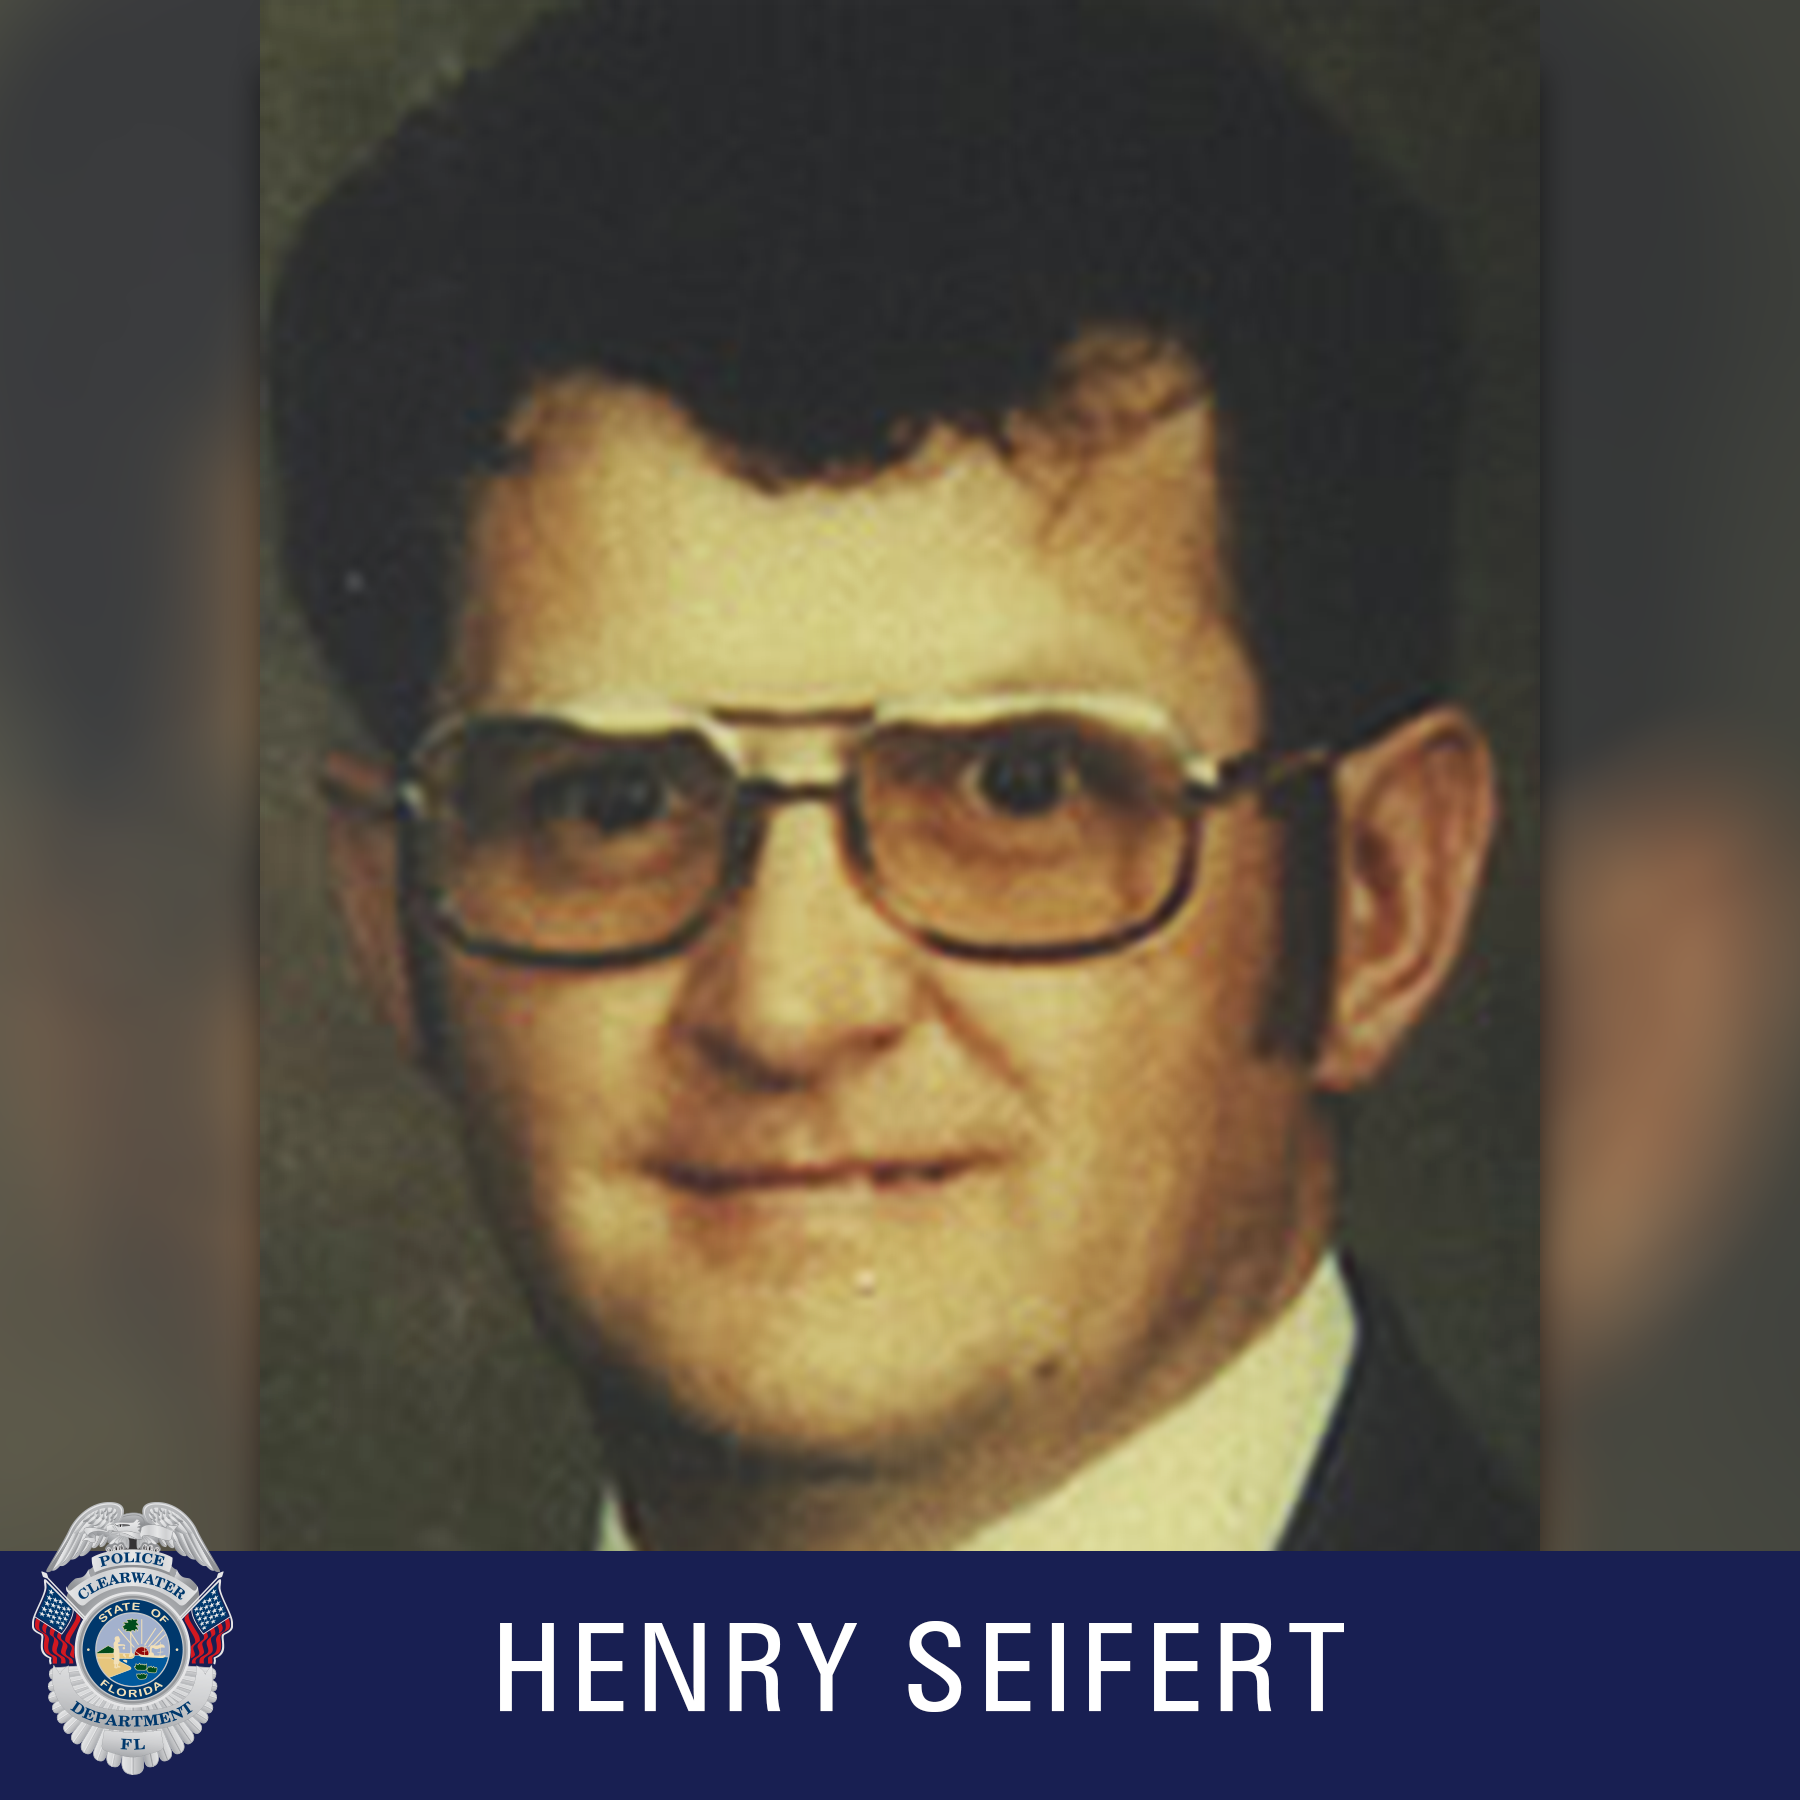 Henry Seifert, Clearwater Police Department Shield, Male wearing glasses